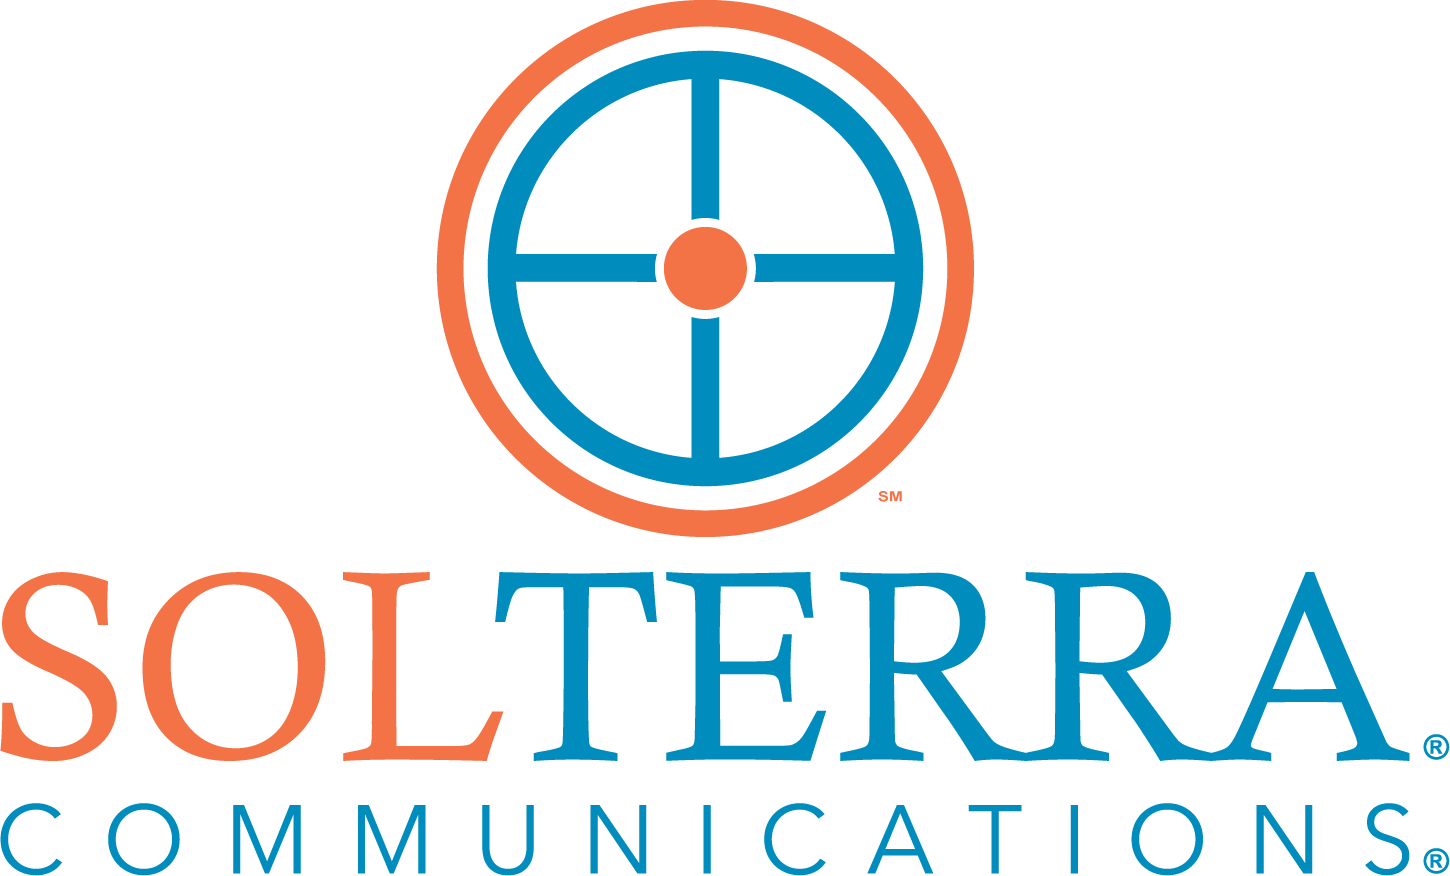 solterra communications website design branding SAAS provider video production